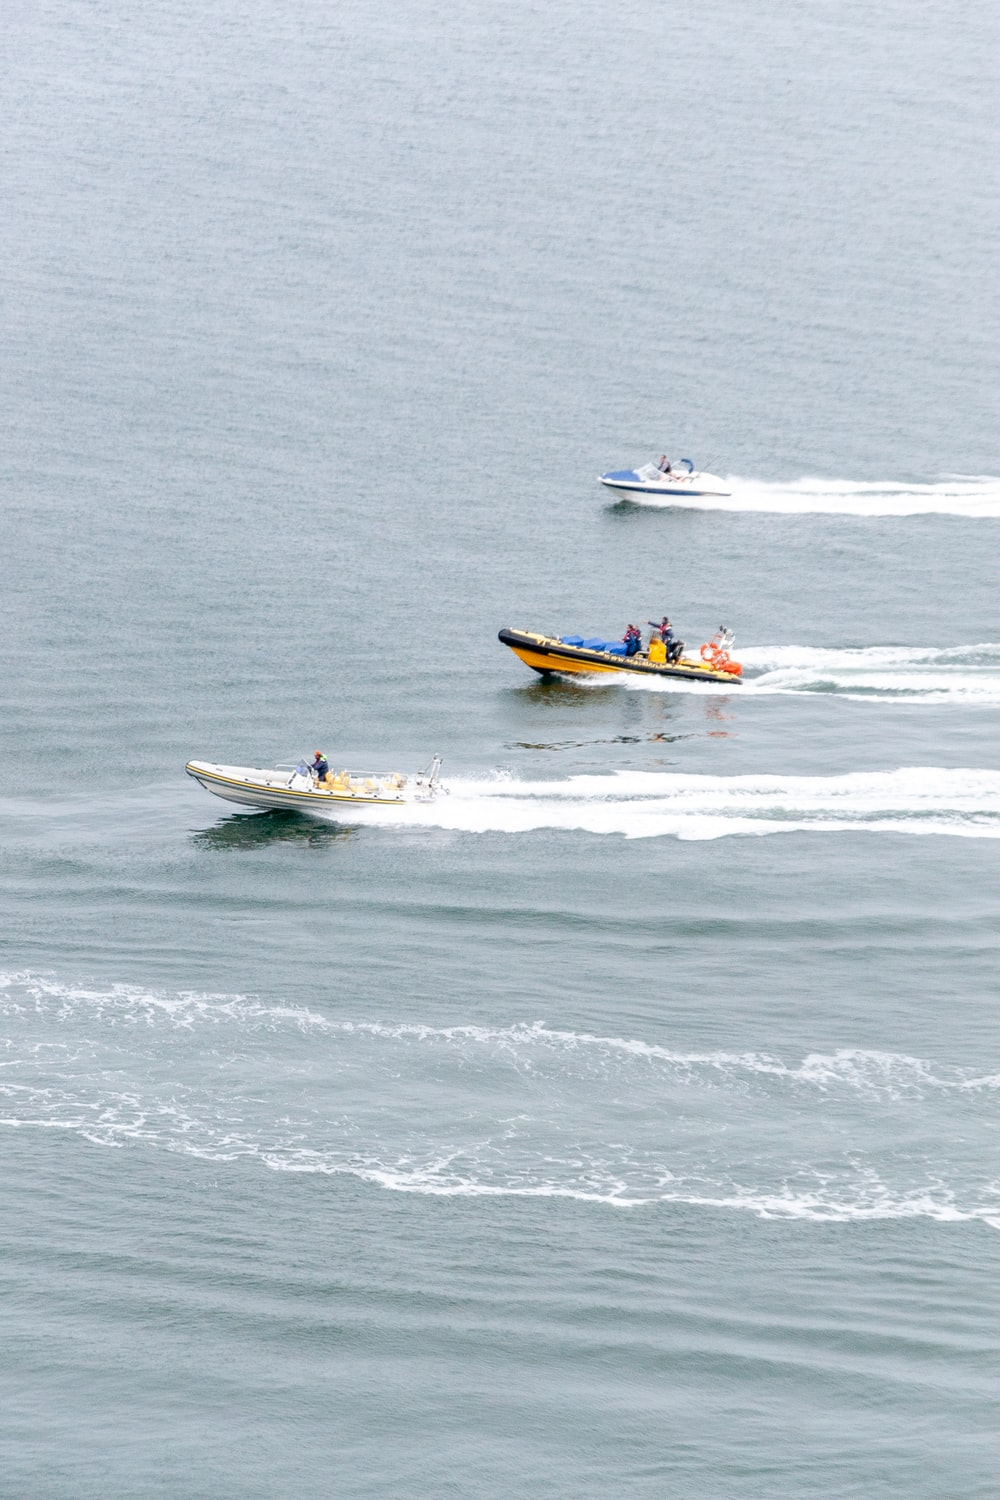 man in black shirt riding on white and yellow boat on sea during daytime